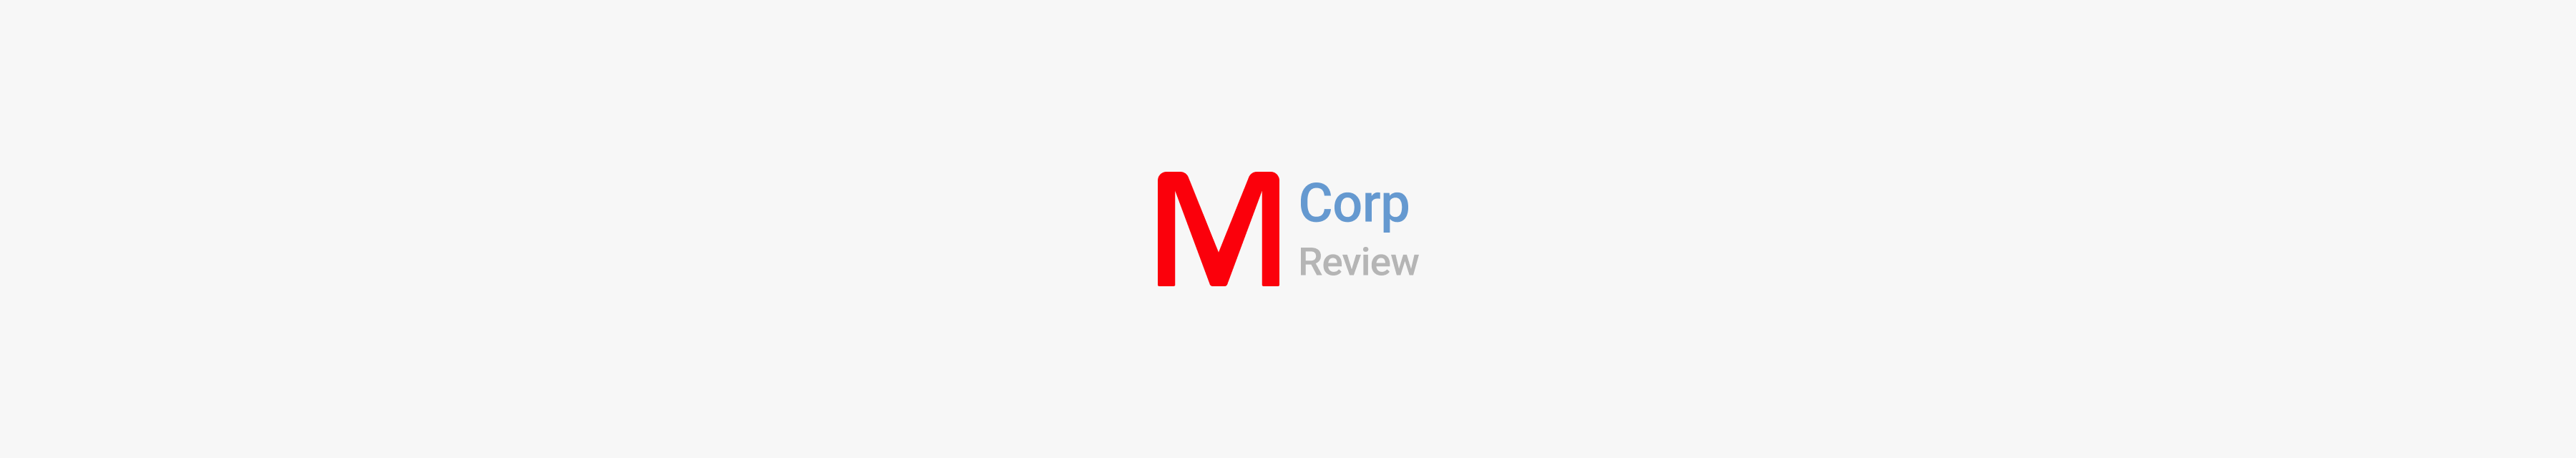 MCorp Review